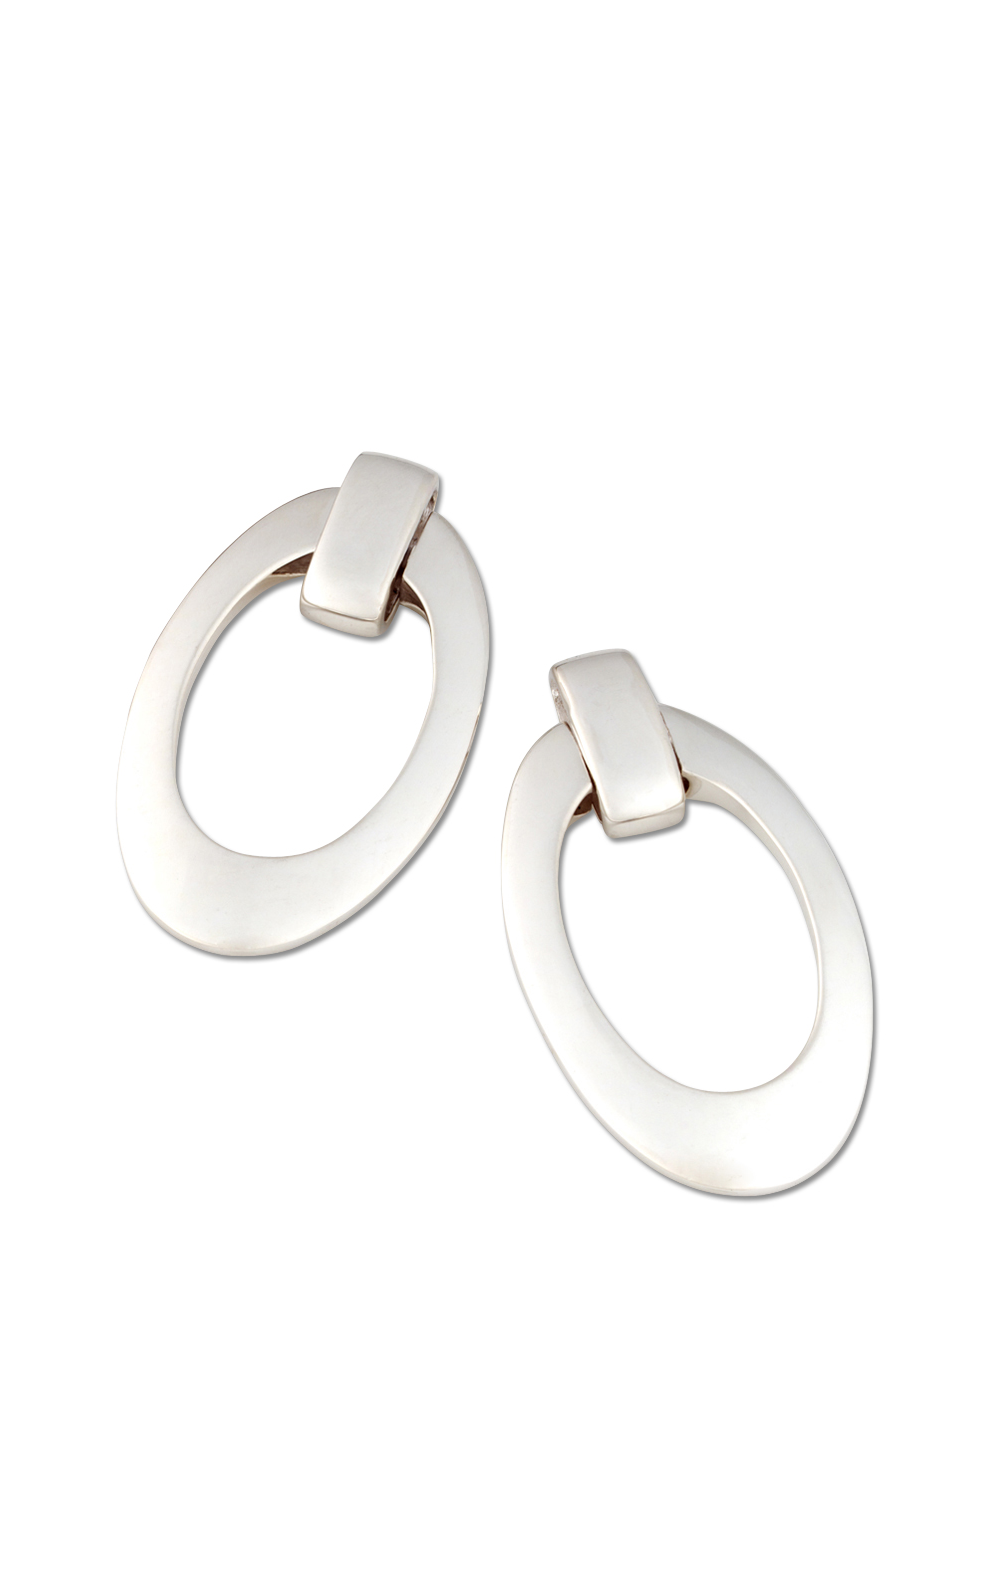 Zina Contemporary Earrings B344 product image